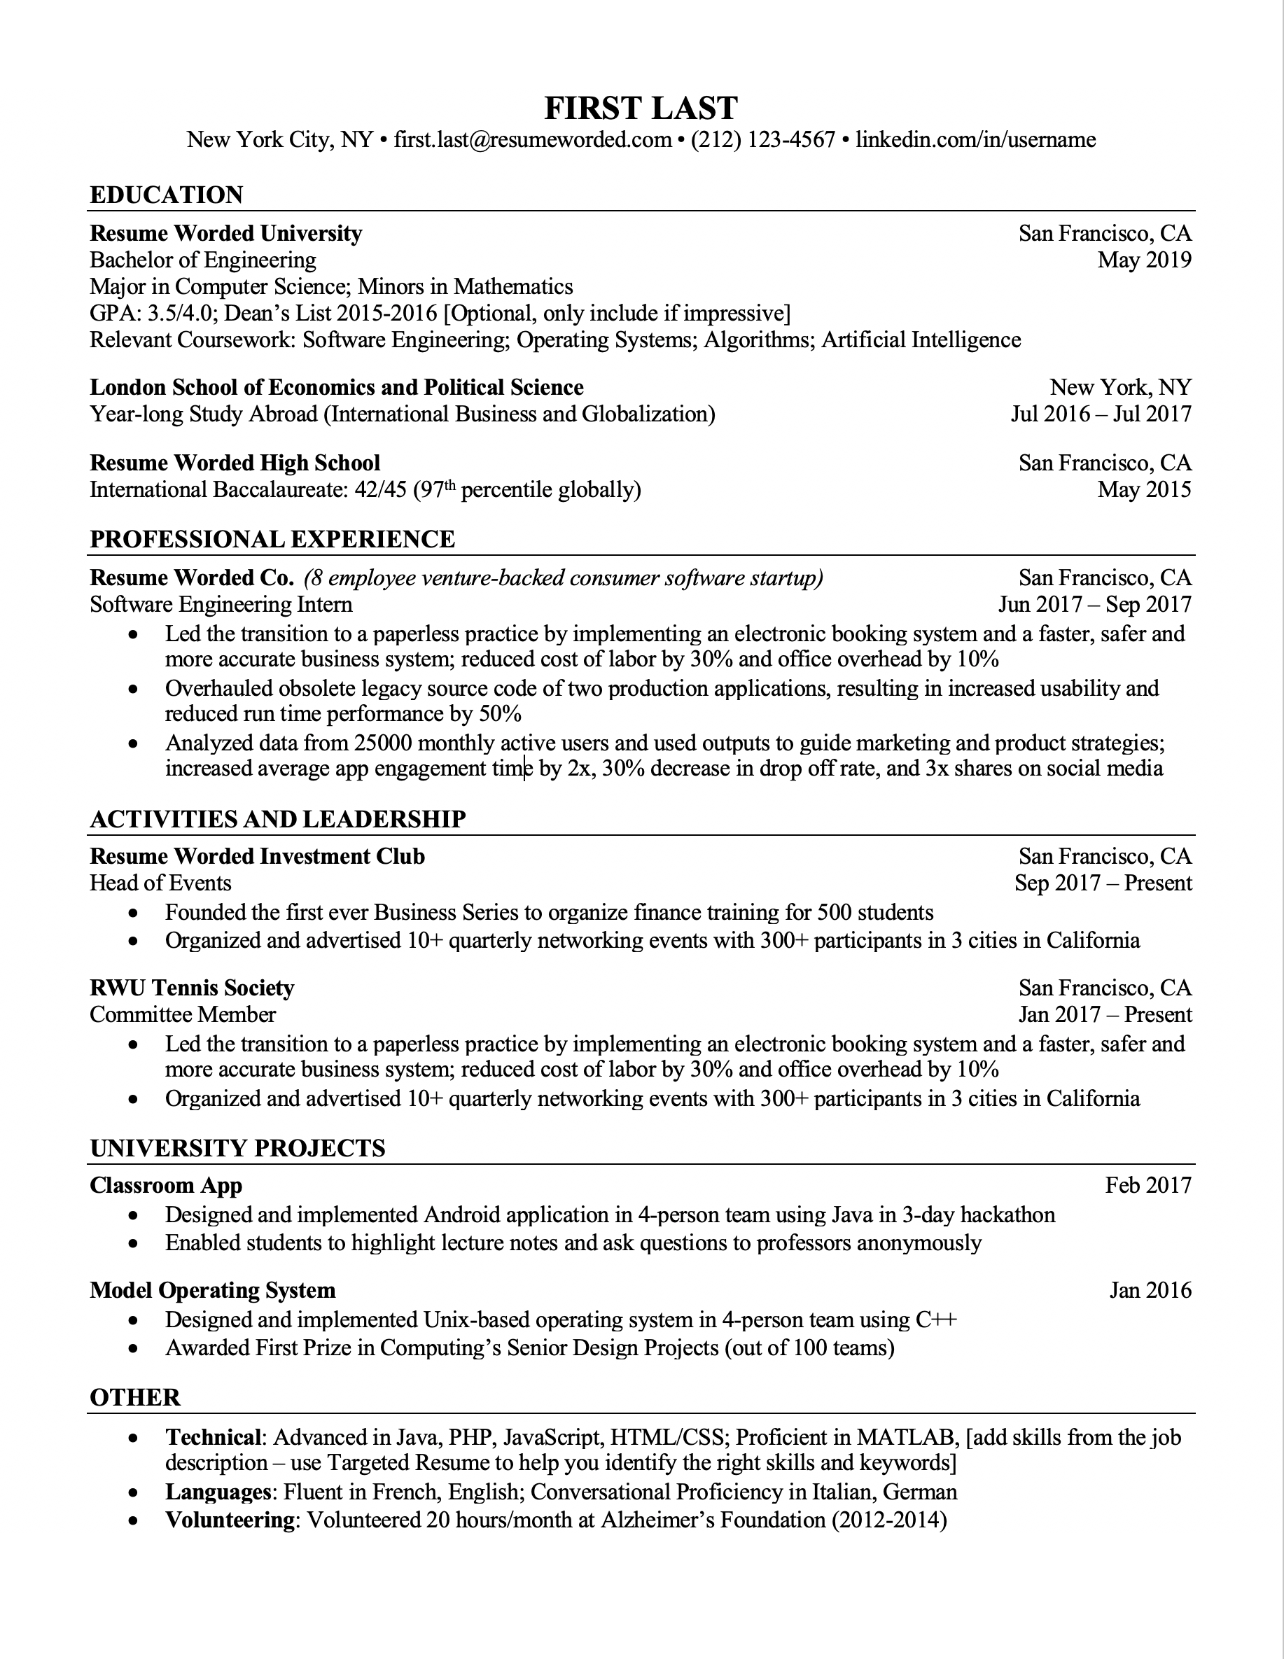 resume template little work experience  Professional ATS Resume Templates for Experienced Hires ..